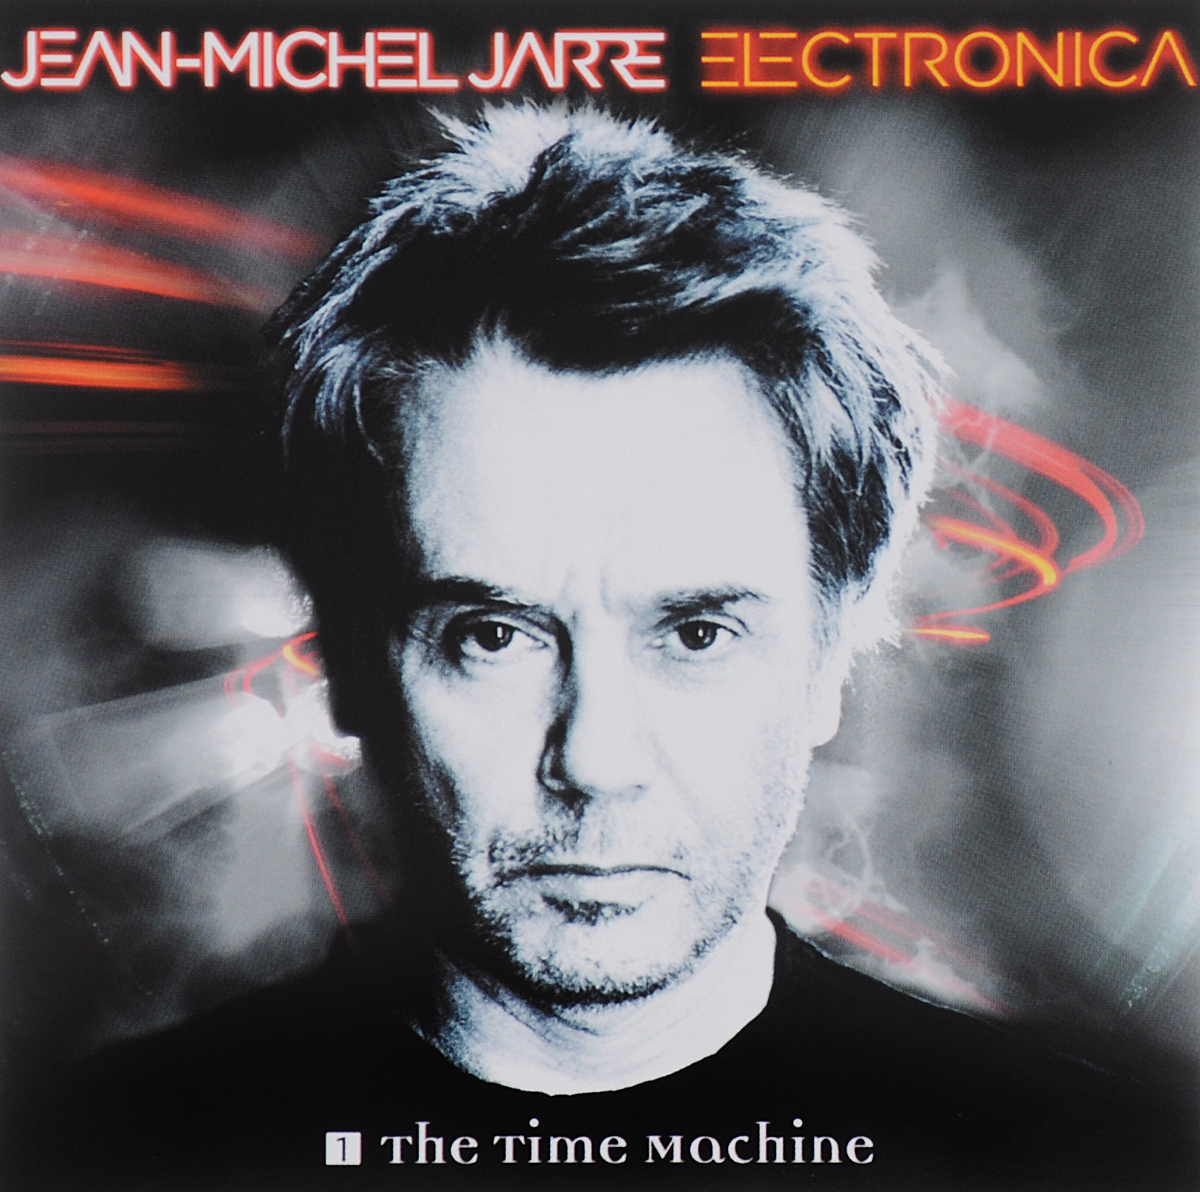 Jean Michel Jarre. Electronica 1 - The Time Machine